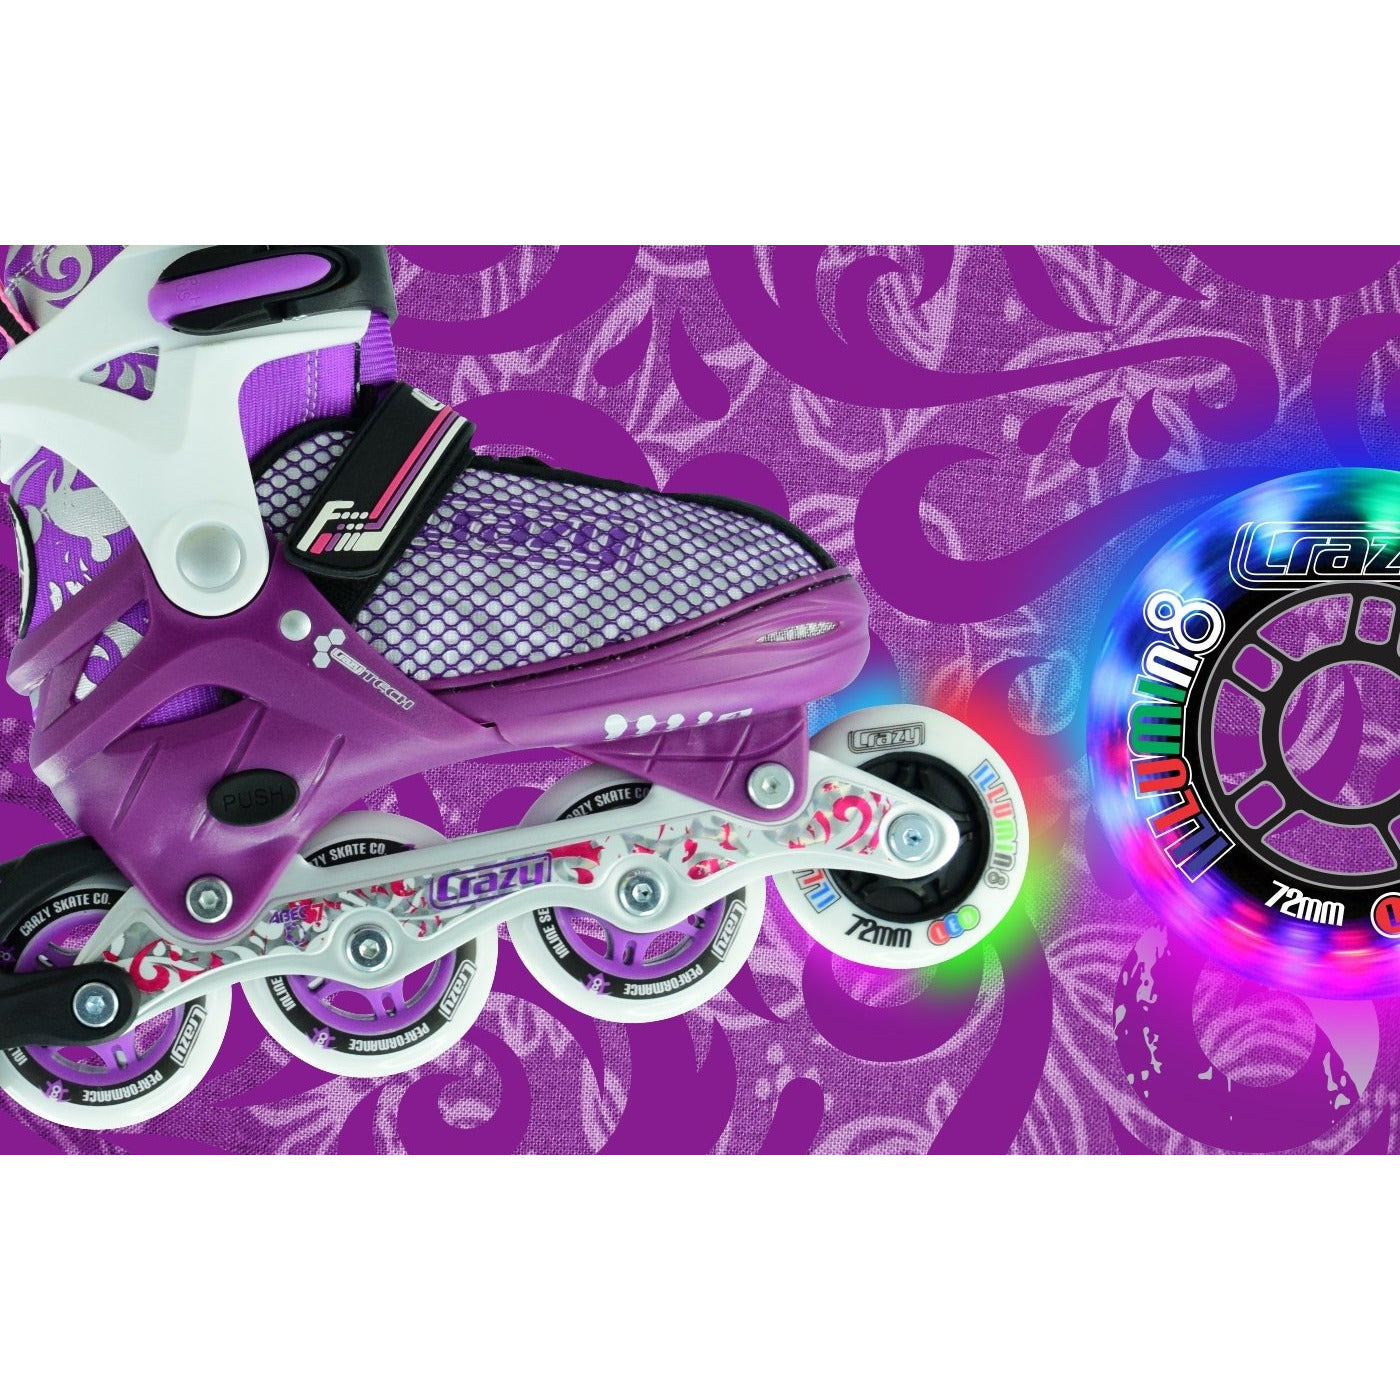 Crazy Skates 168 Adjustable Inline Skates Purple/White